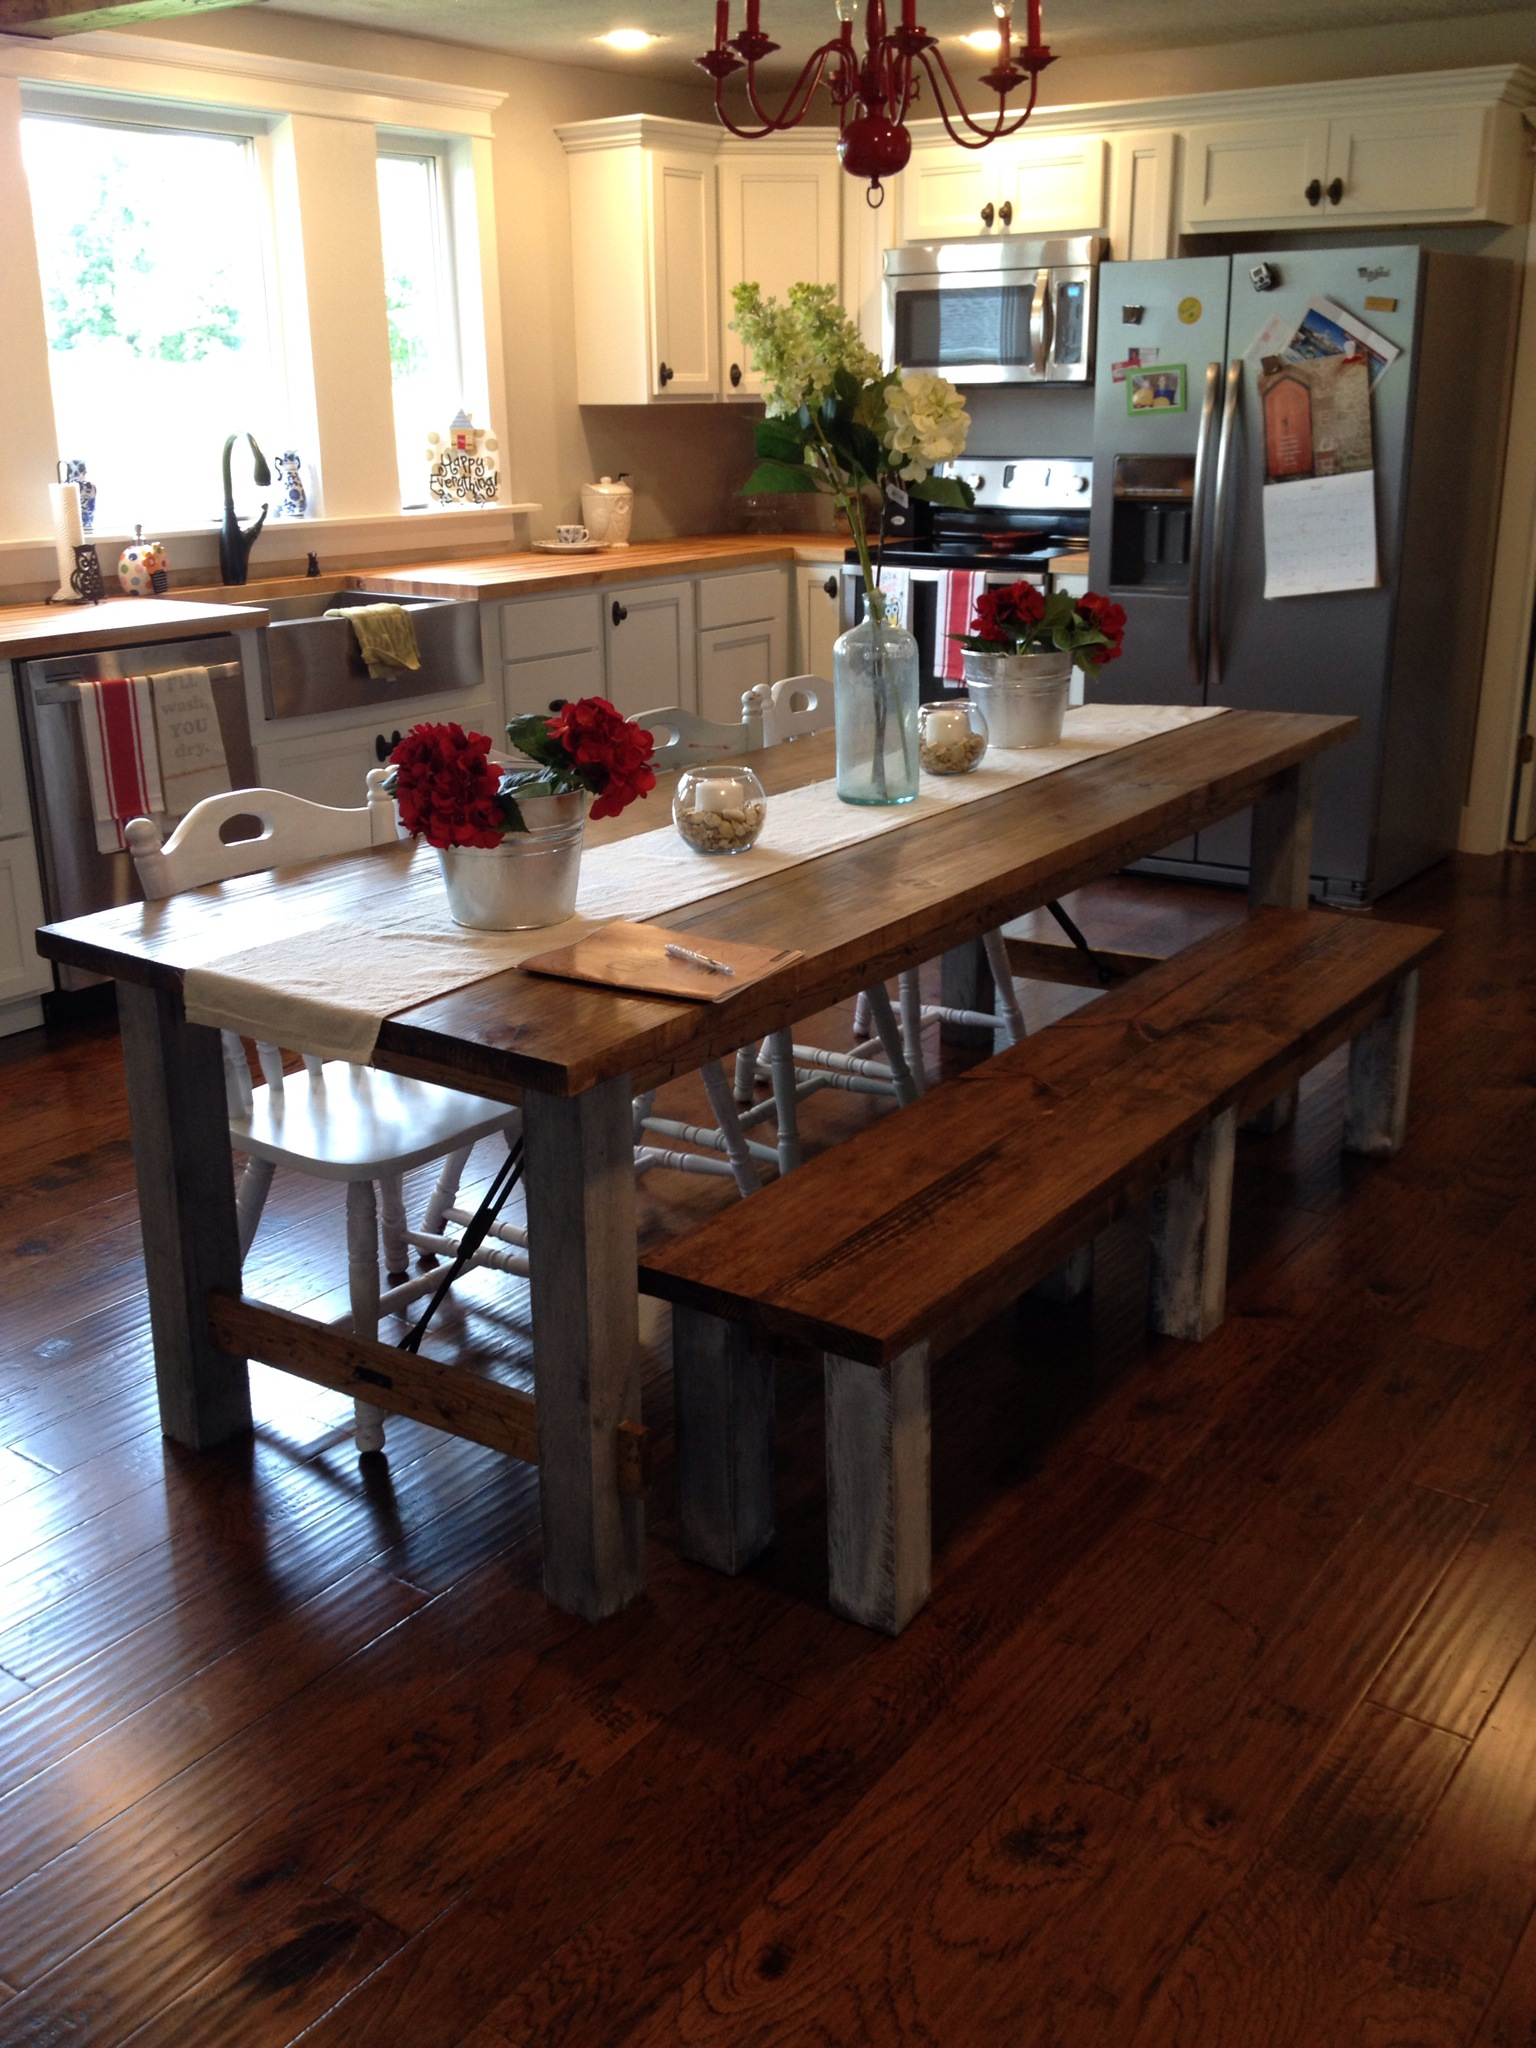 Shara at Chasing a Dream Shares her Farmhouse Kitchen Table for a Family of 2  ReFabbed